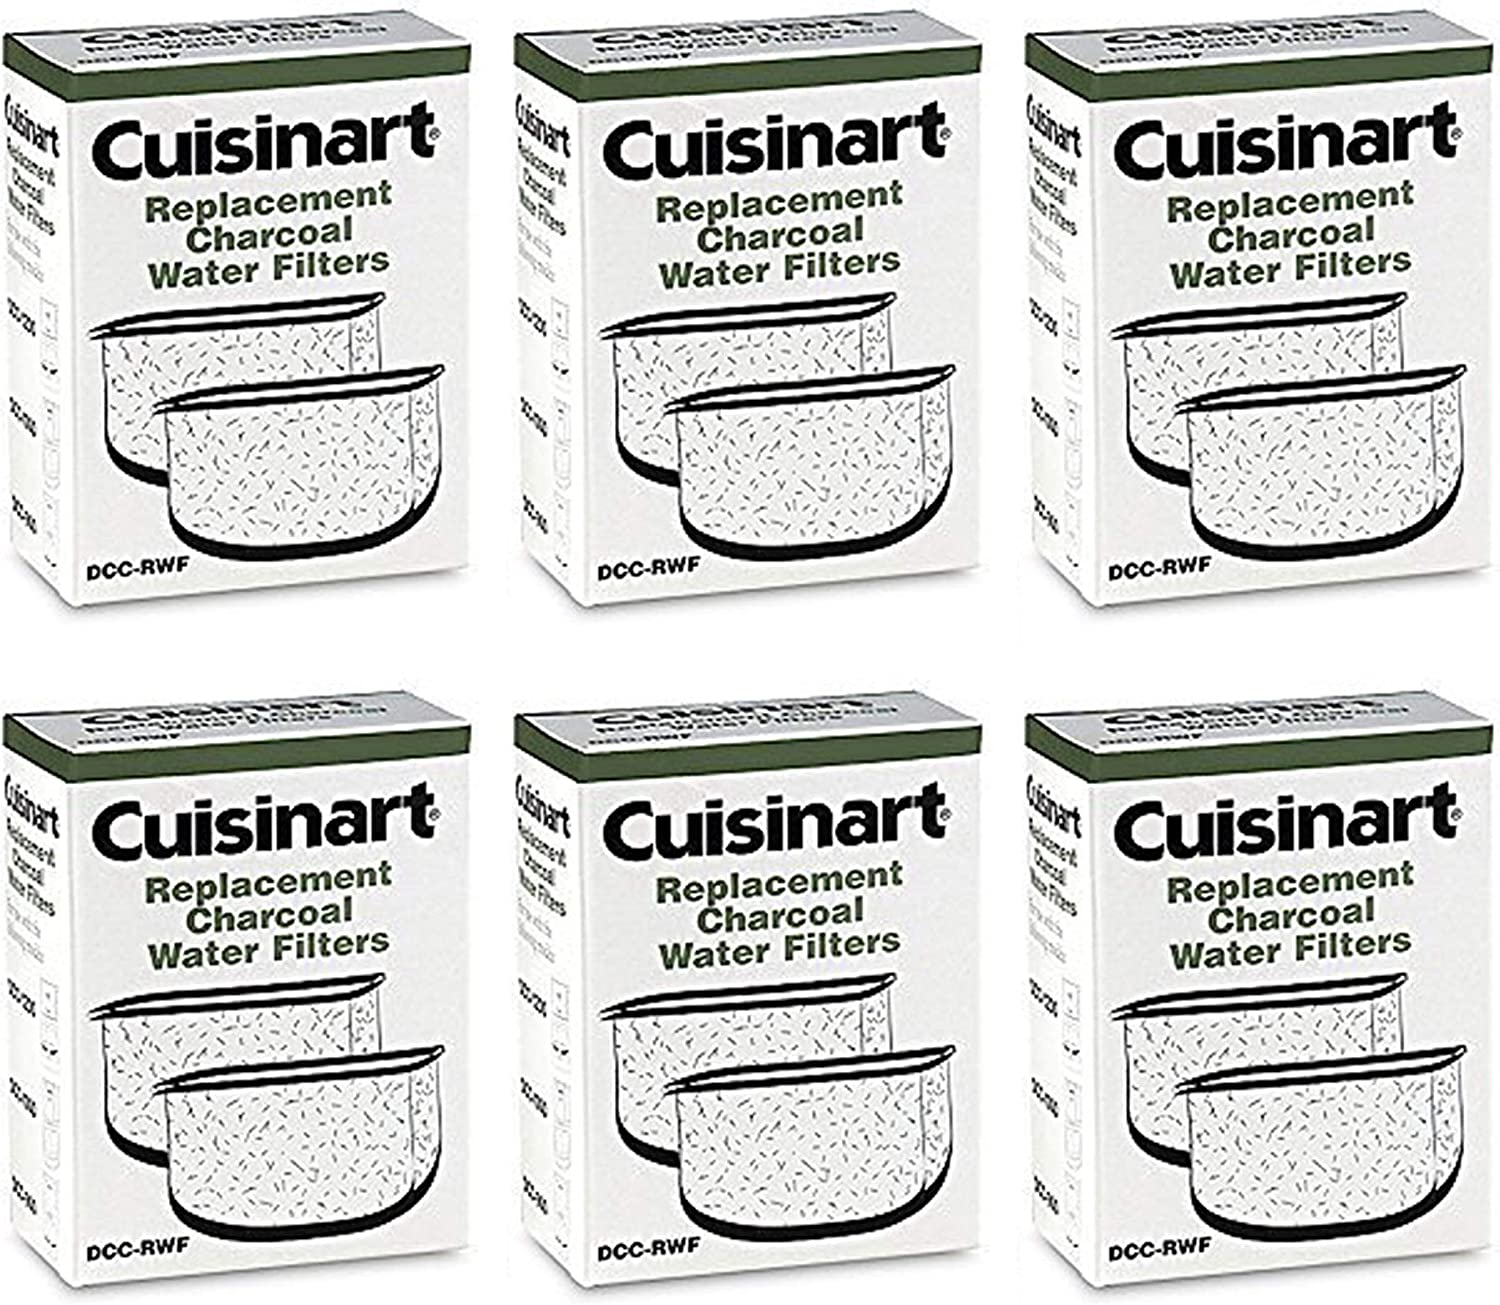 Cuisinart Dcc-Rwf-6Pk (12 Filters) Charcoal Water Filters bei Cuisinart Dcc-Rwf Retail Box